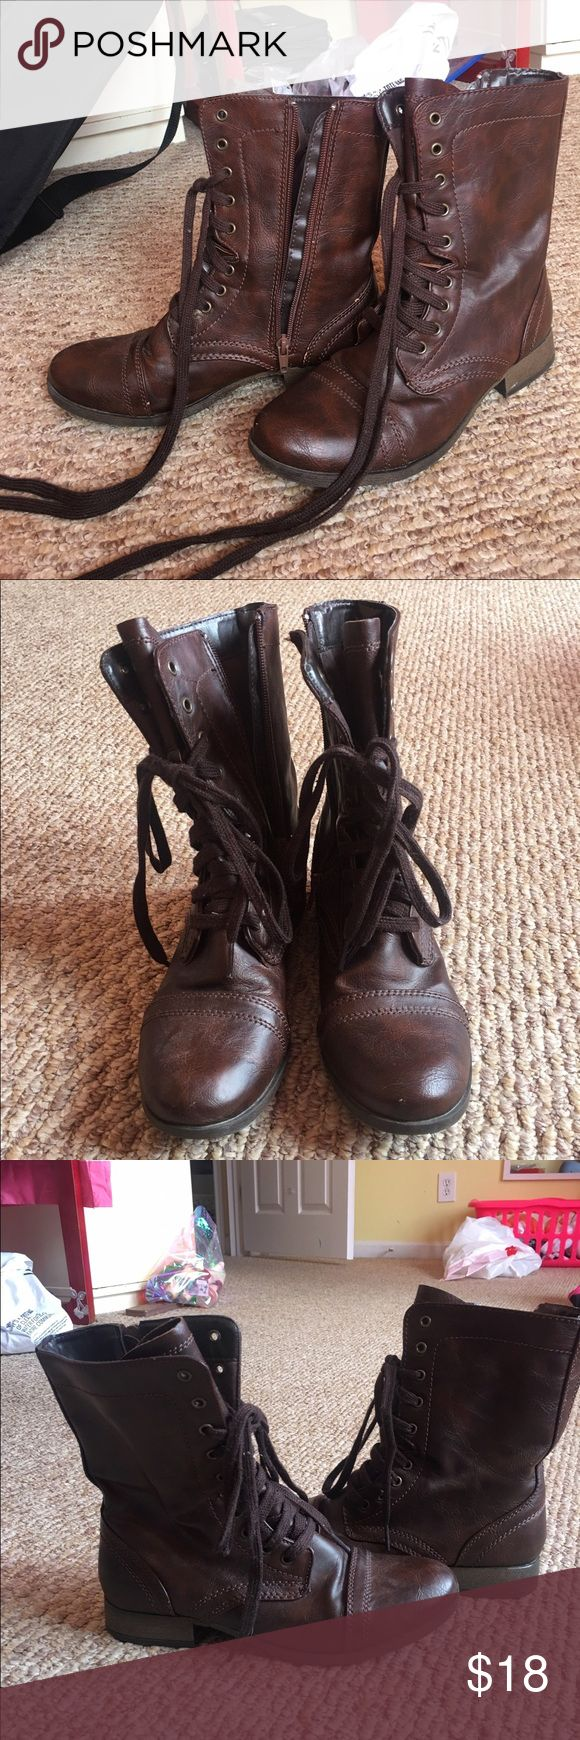 """Candies"" Brown Combat Boots ""Candies"" from Kohl's brown combat boots women's size 8! Worn twice & in amazing LIKE NEW condition!! just been sitting in my closet! Zip up and have laces. Accepting all reasonable offers! Candie's Shoes Combat & Moto Boots"